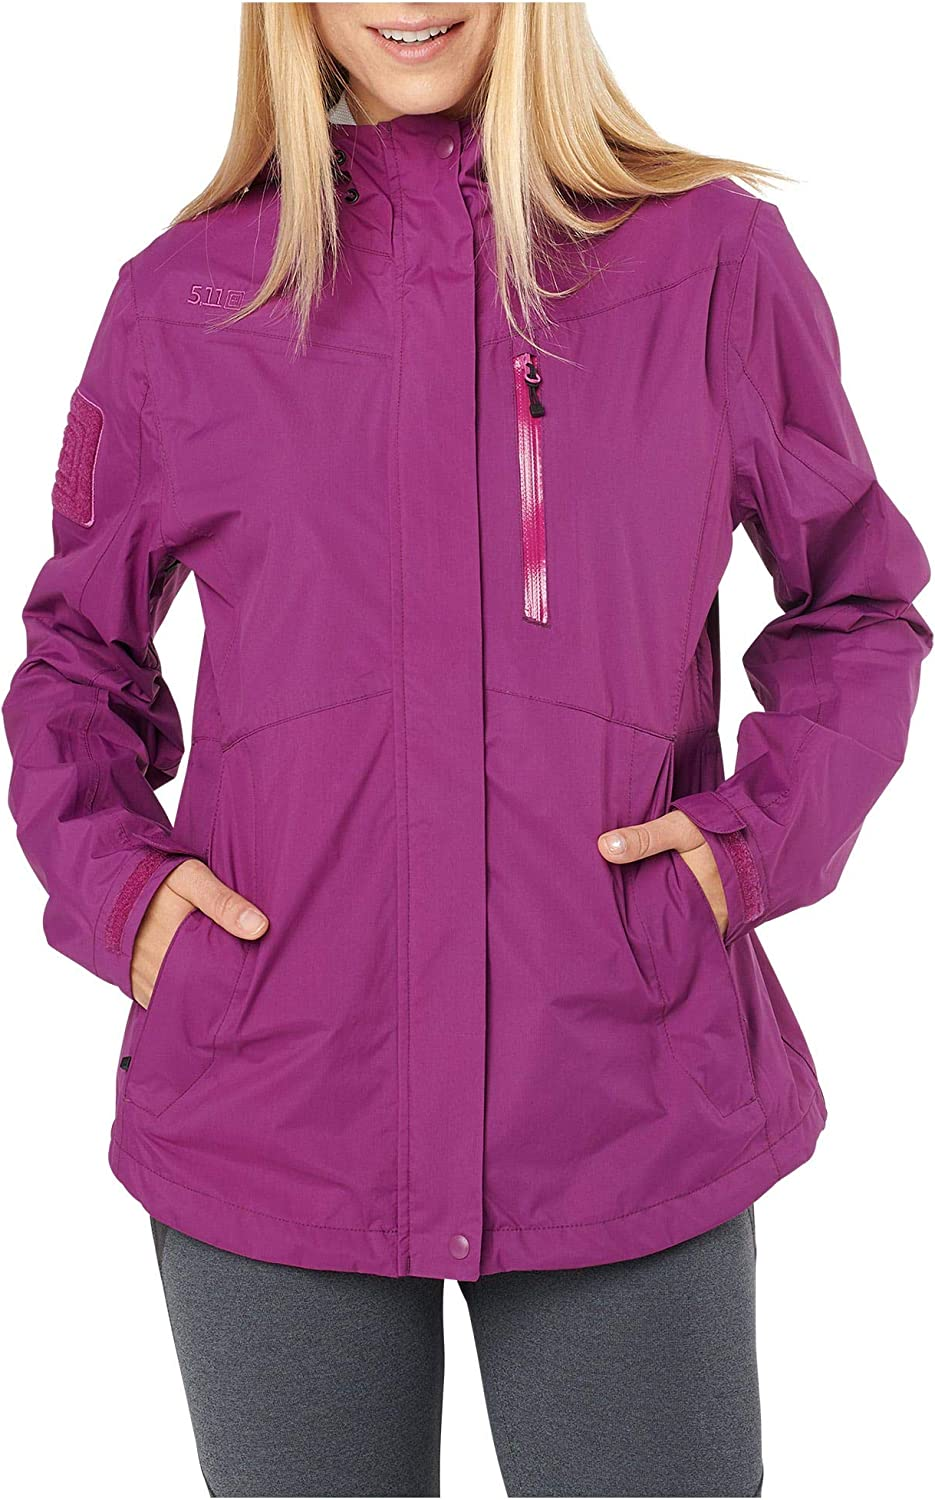 5.11 Tactical Women's Polyester Aurora Waterproof Shell Jacket, Style 38077